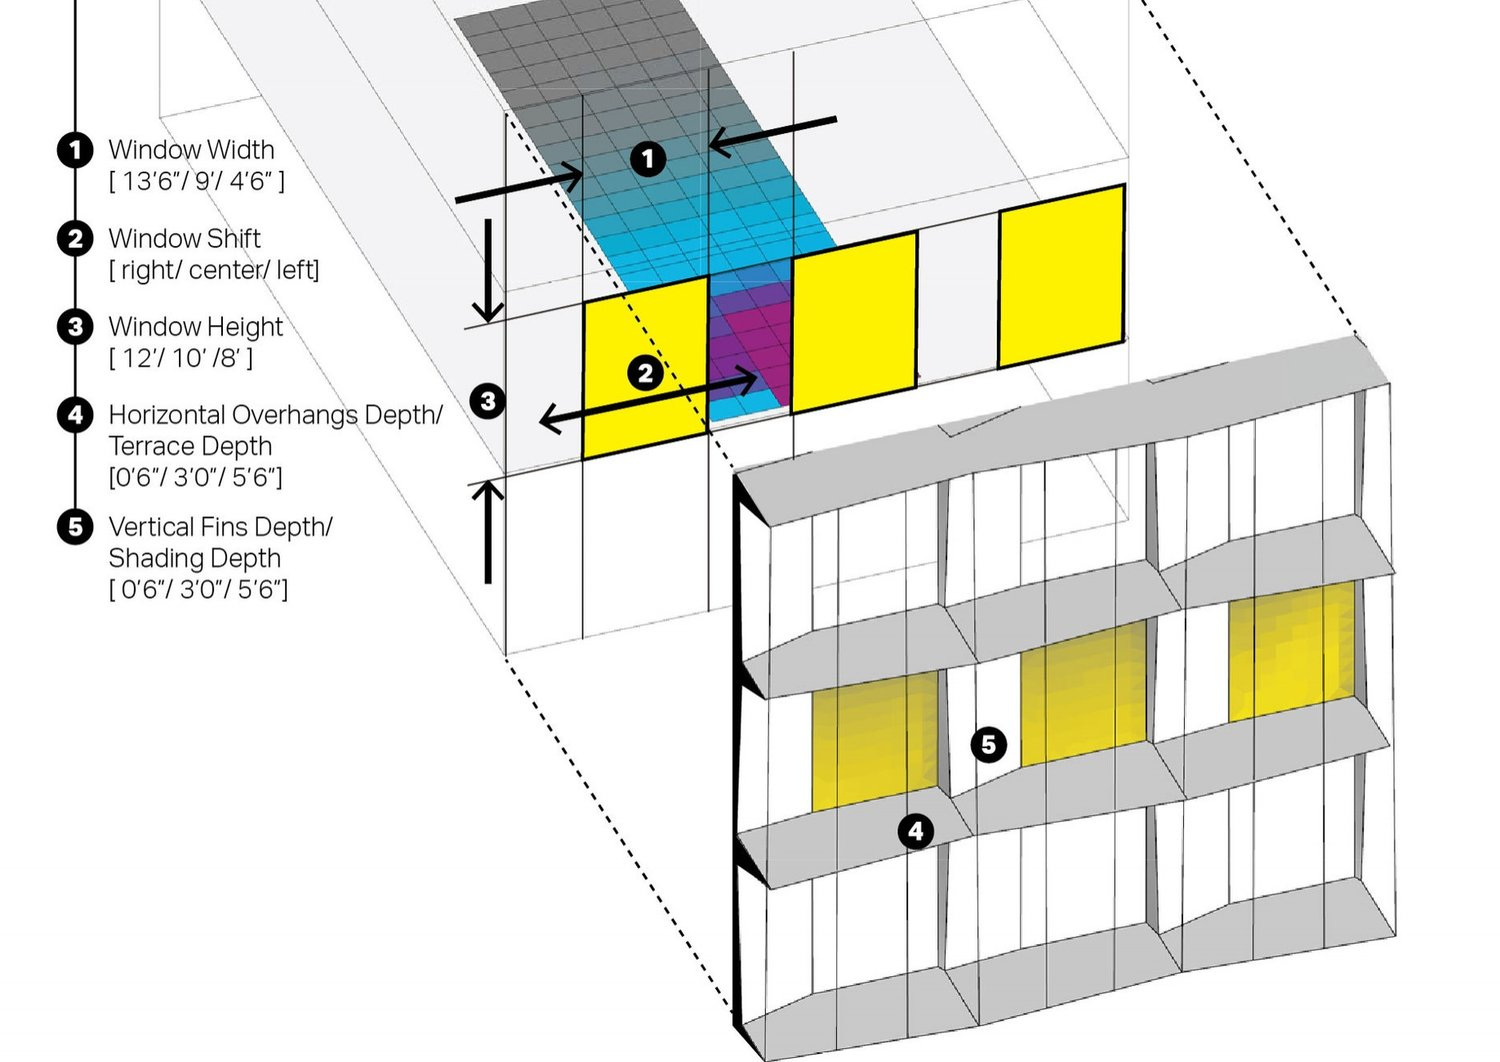 What is the impact of facade geometry on space daylight distribution and heating/ cooling load? Check out the full submission HERE Submitted by: Xiaofei Shen Firm Name: AECOM